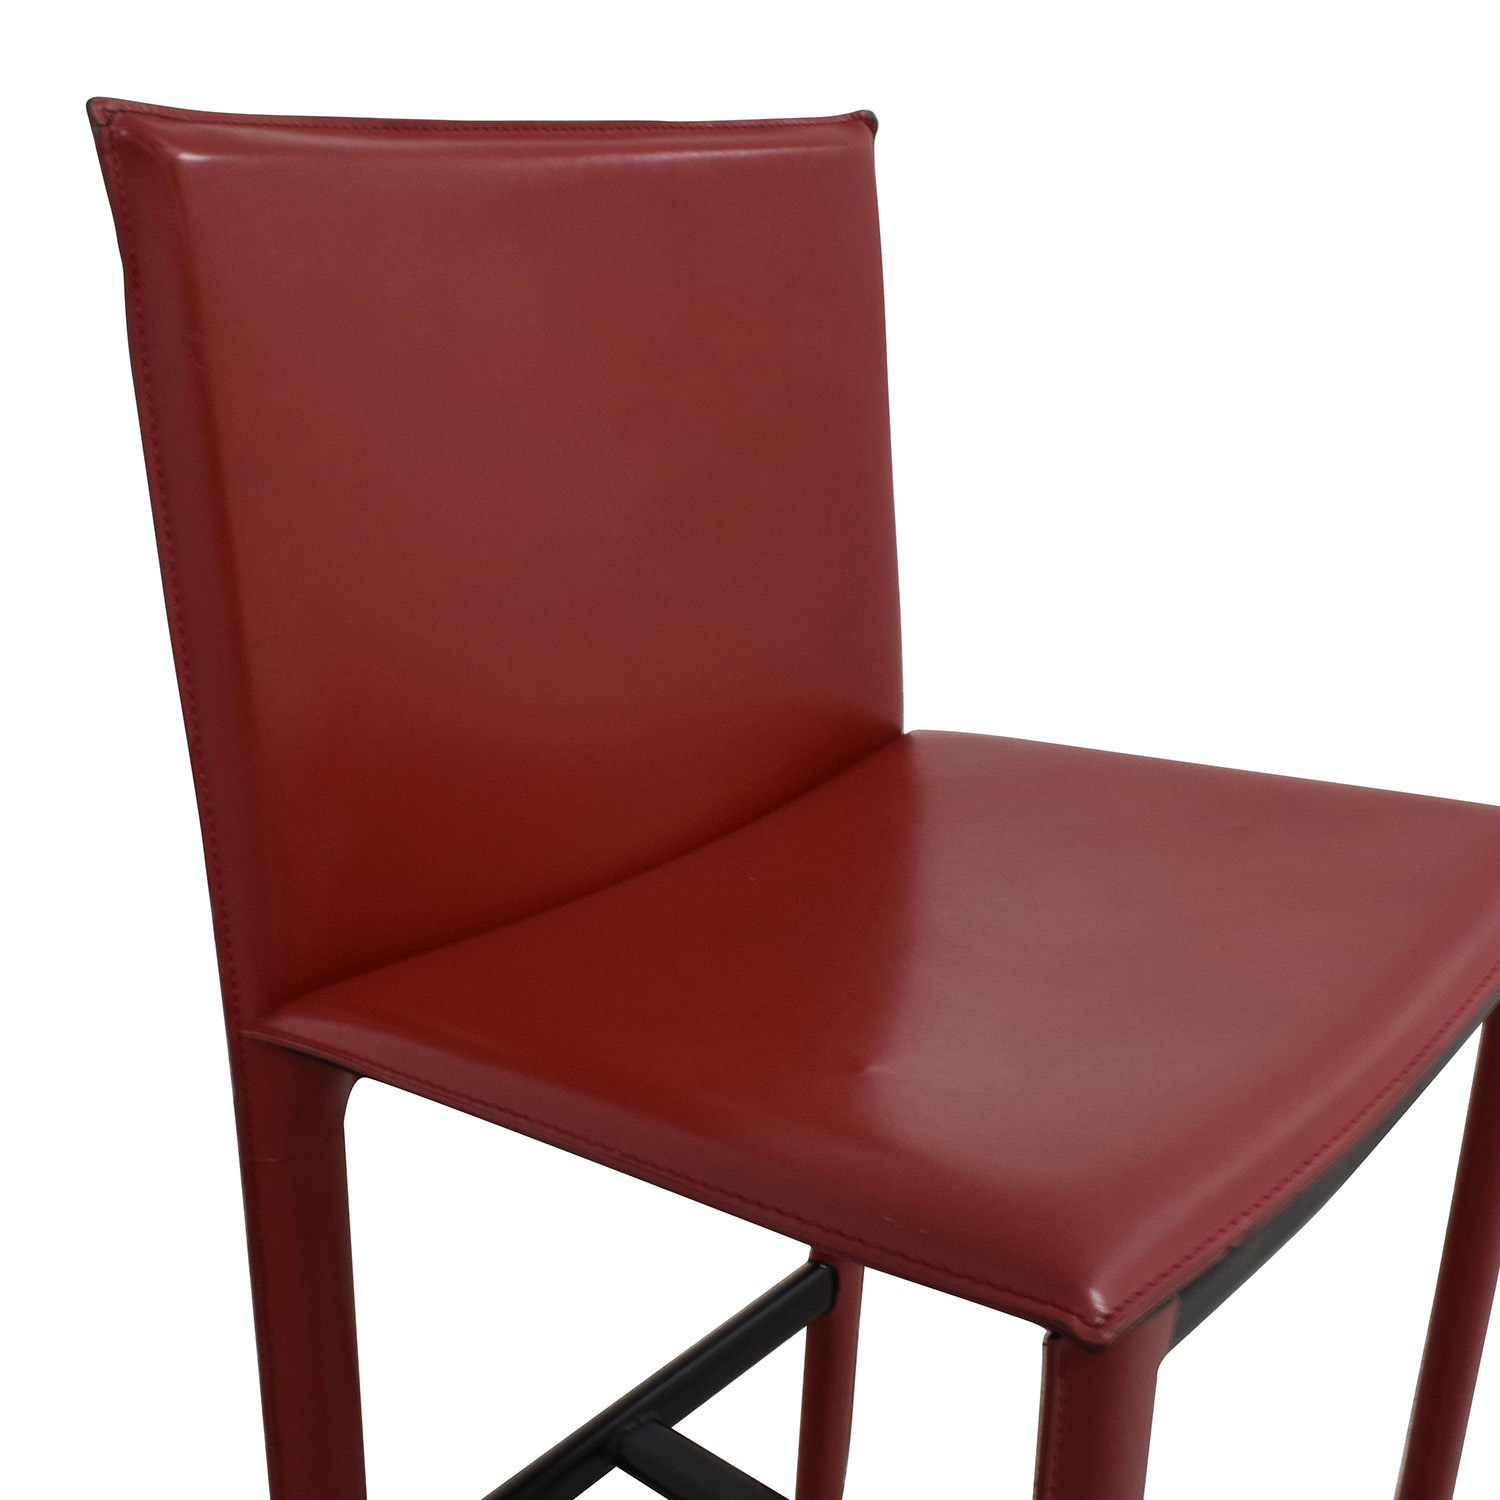 Room & Board Room & Board Sava Bar Stool in Red Leather coupon